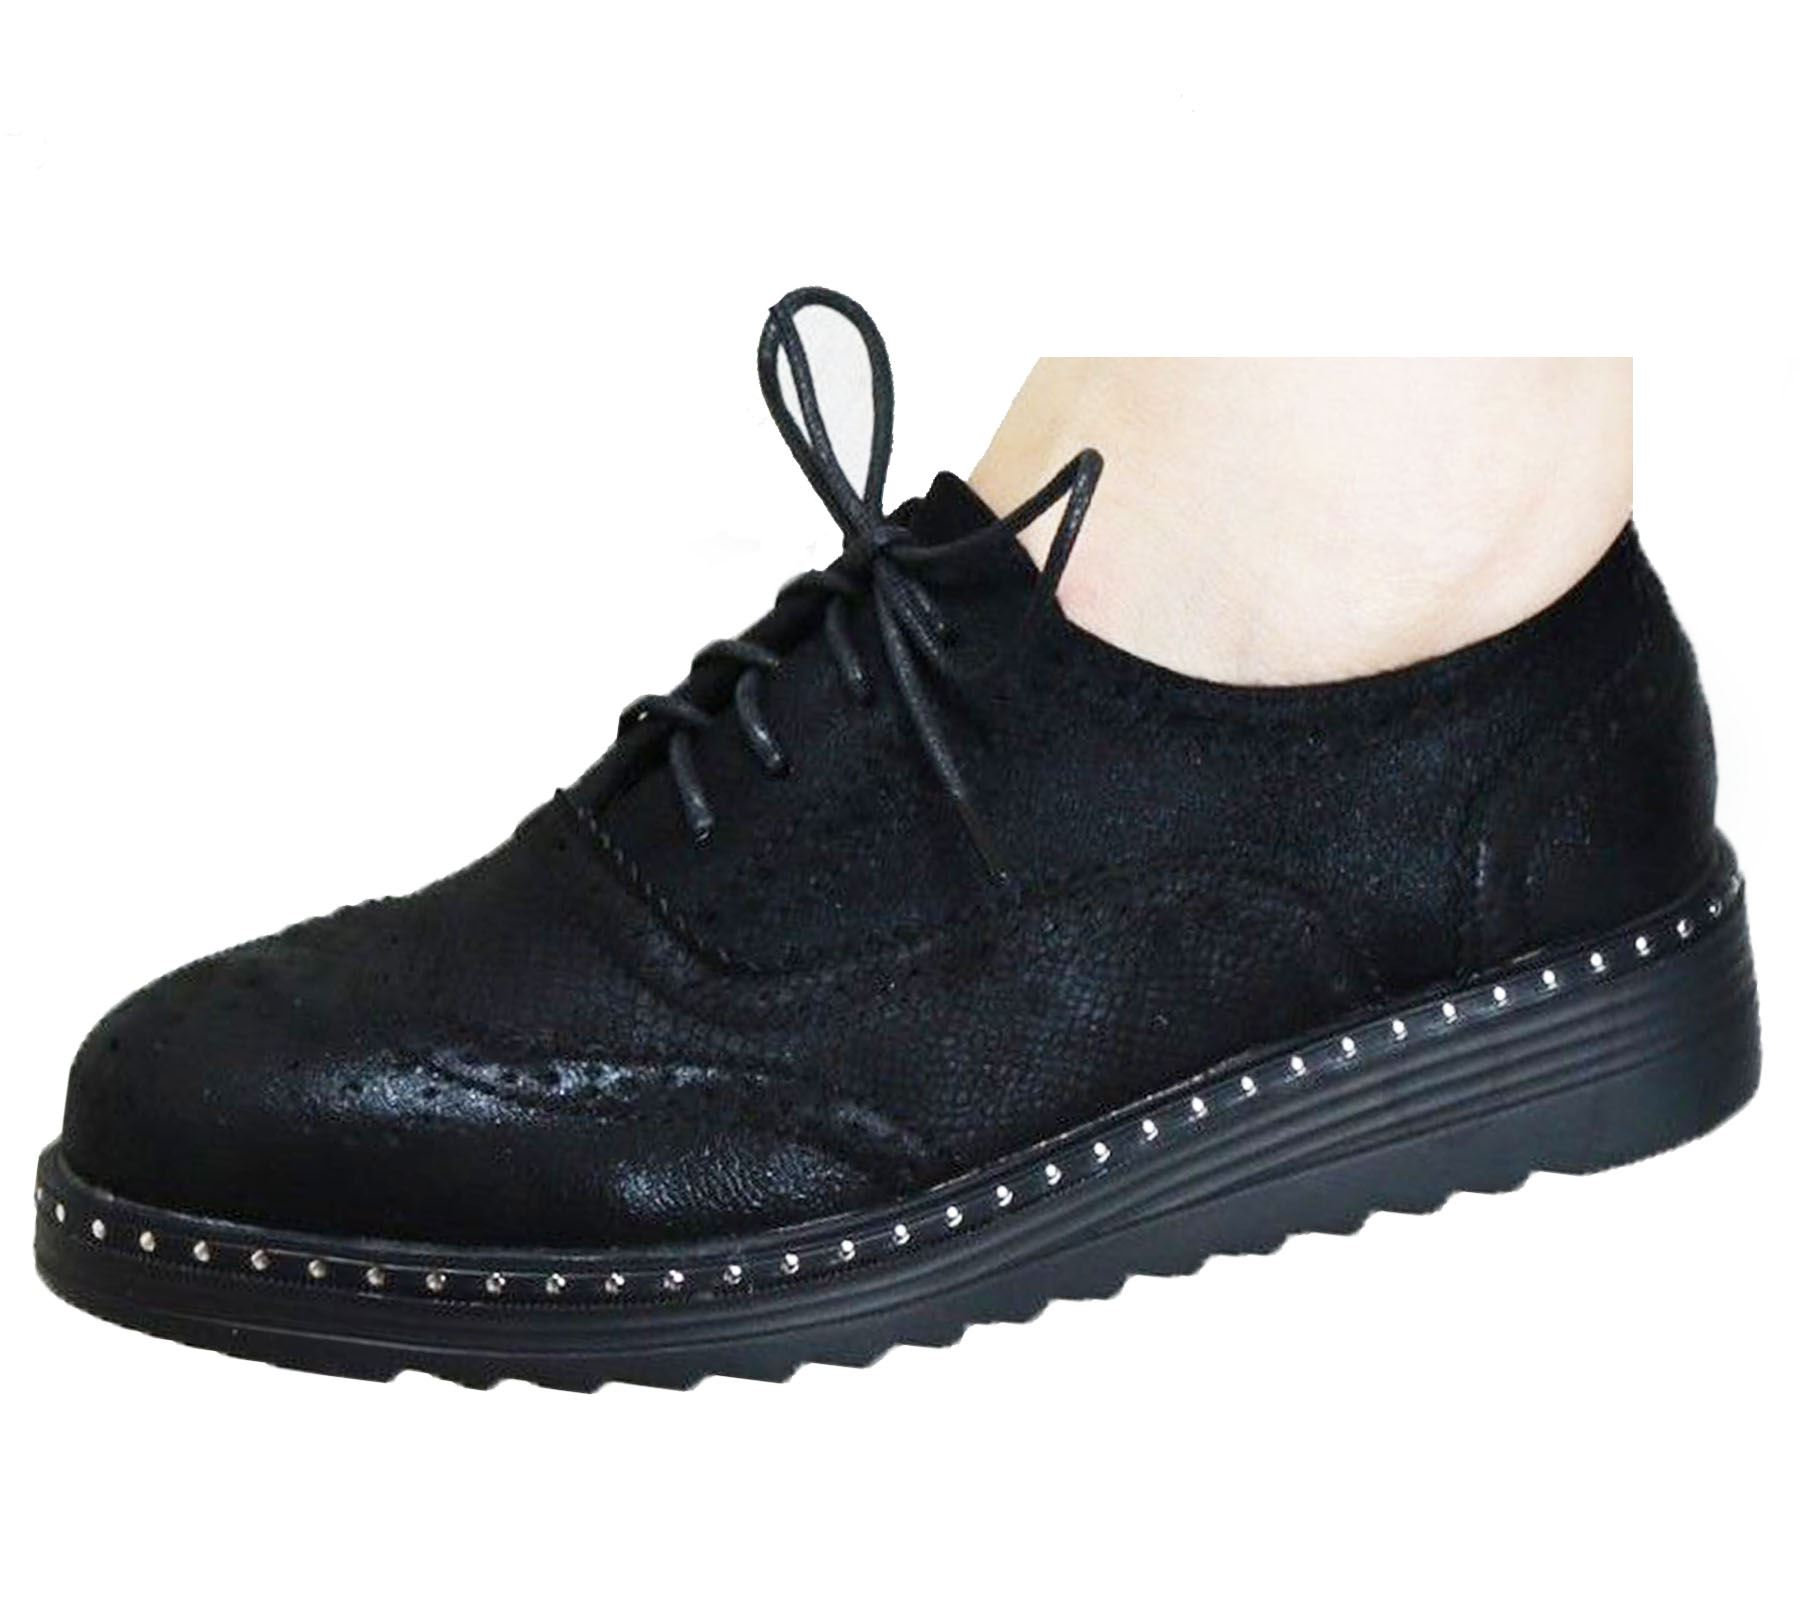 Ladies-Brogue-Lace-Up-Shoes-Womens-Oxford-Smart-Office-Loafers-Shoes miniatura 3